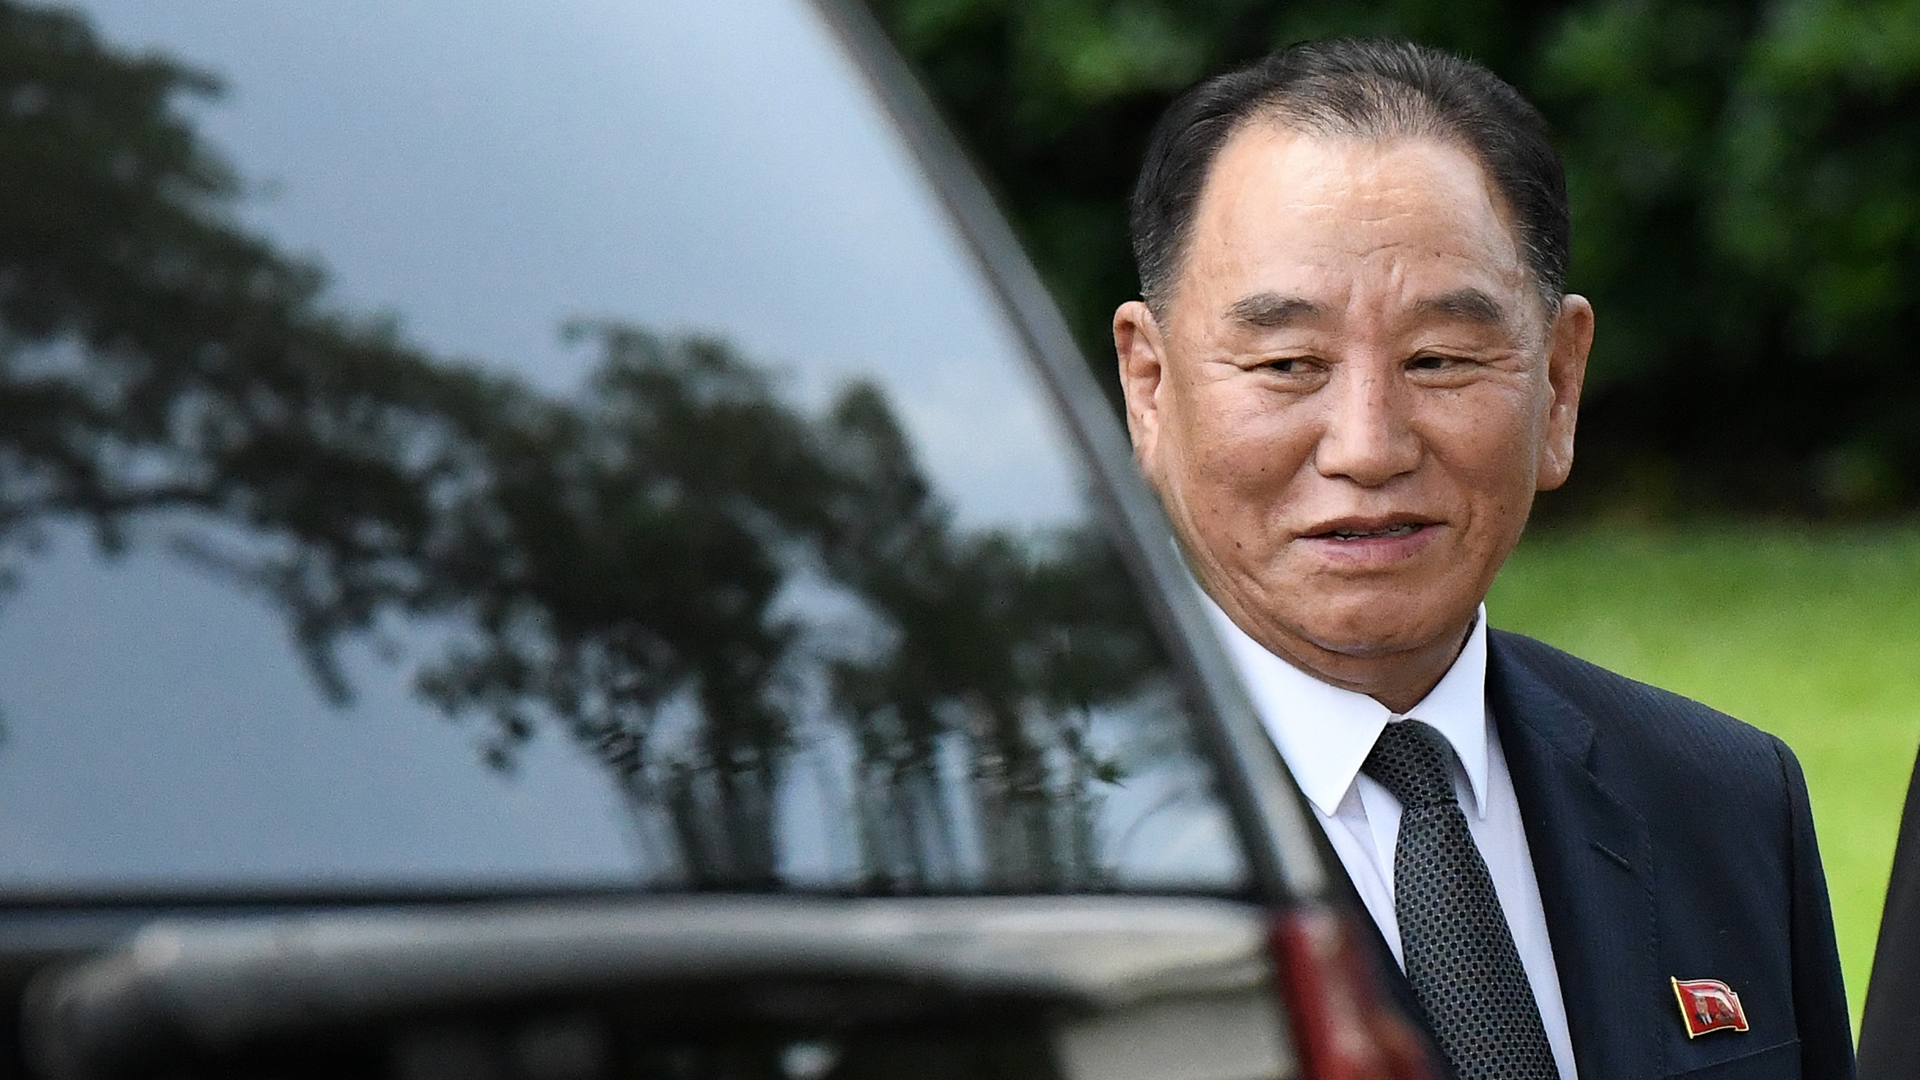 Kim Yong Chol, one of Kim Jong Un's closest aides departs the White House on June 1, 2018, in Washington, D.C. (Credit: Olivier Douliery-Pool/Getty Images)